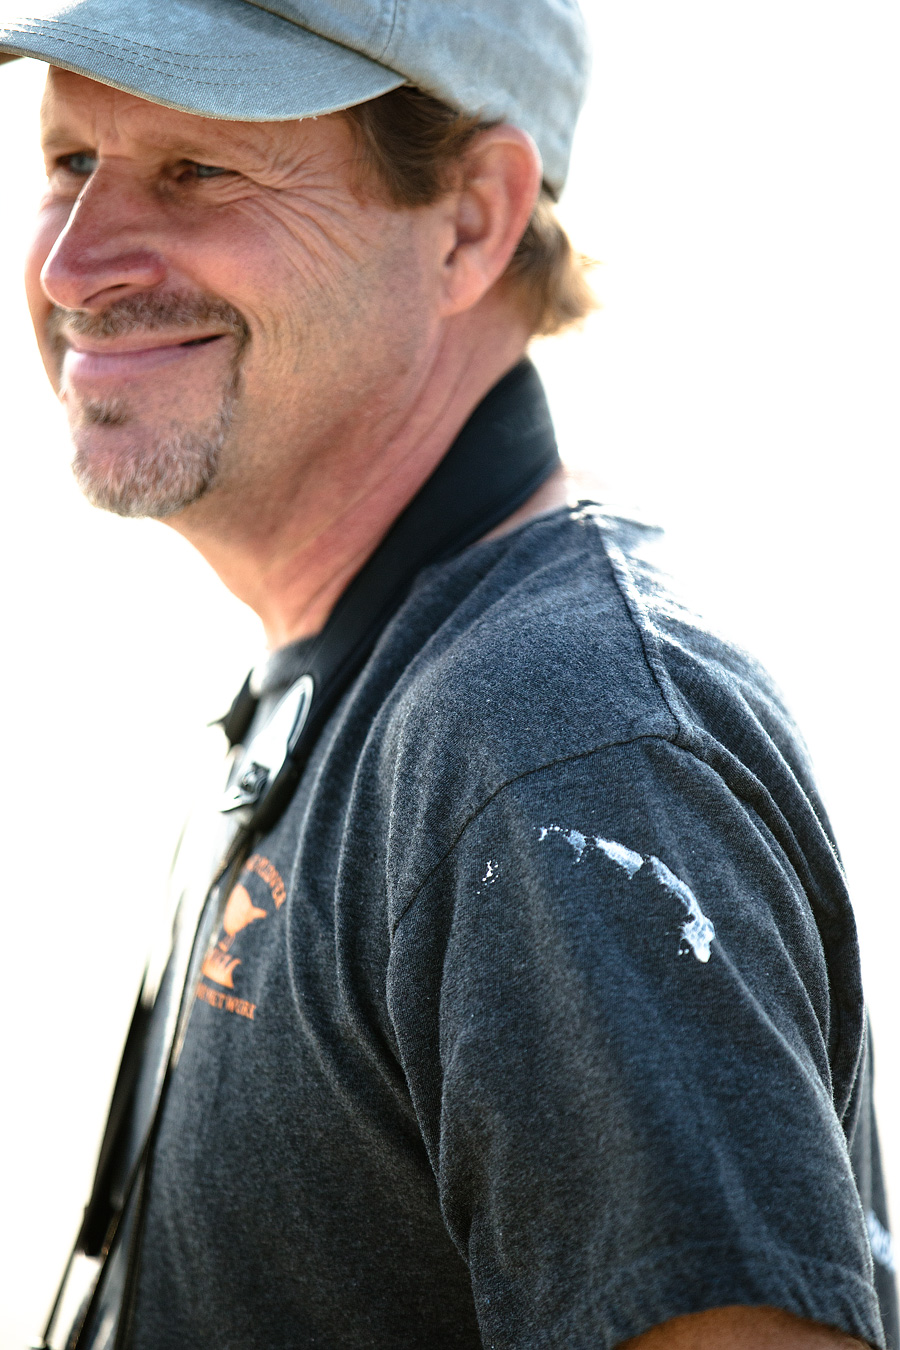 Poop shirt. That's the thanks Todd gets when he checks on the eggs of New Jersey's largest colony of Black Skimmers.